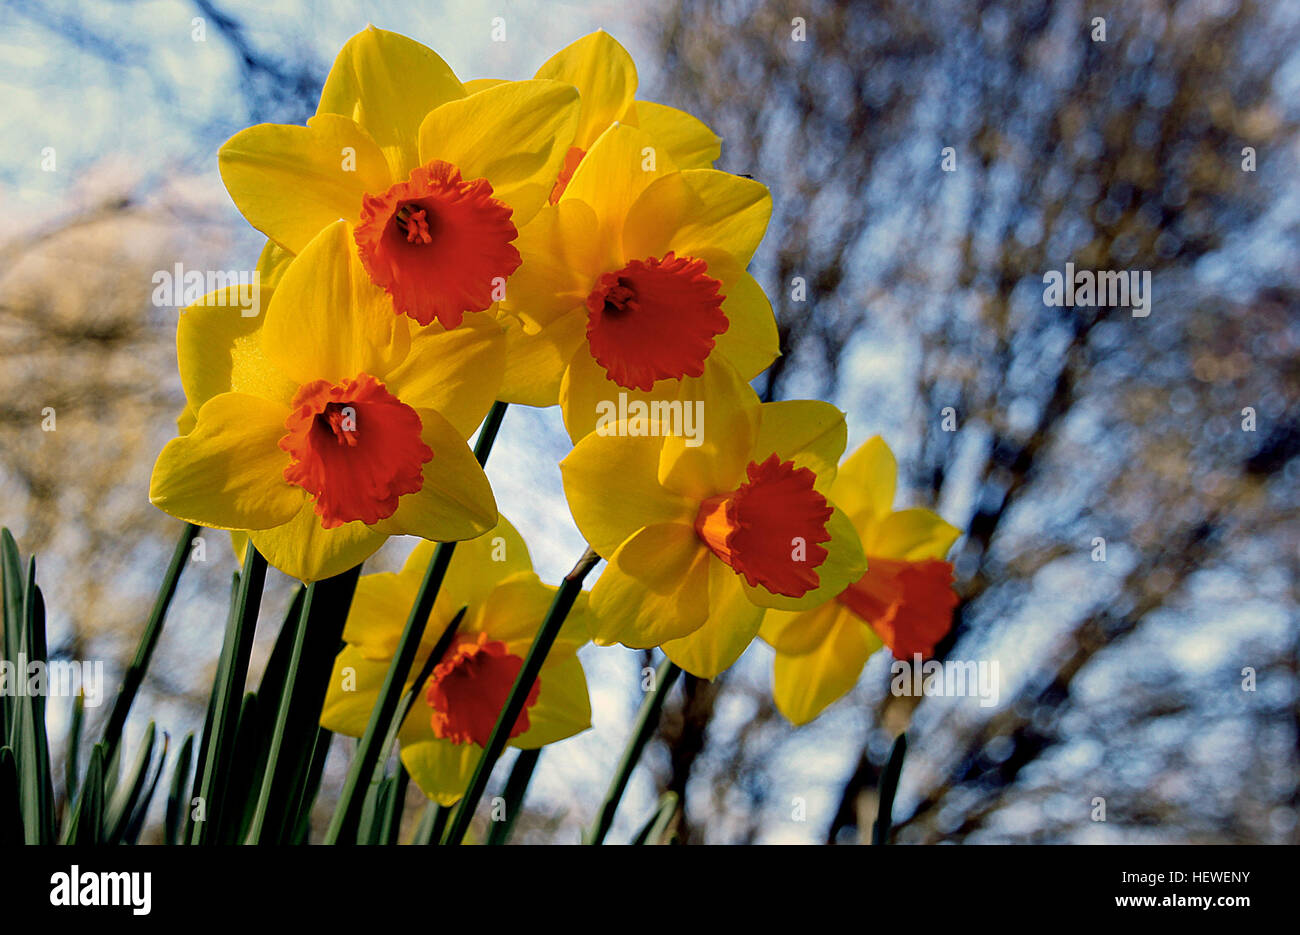 Narcissus Is A Genus Of Predominantly Spring Perennial Plants In The